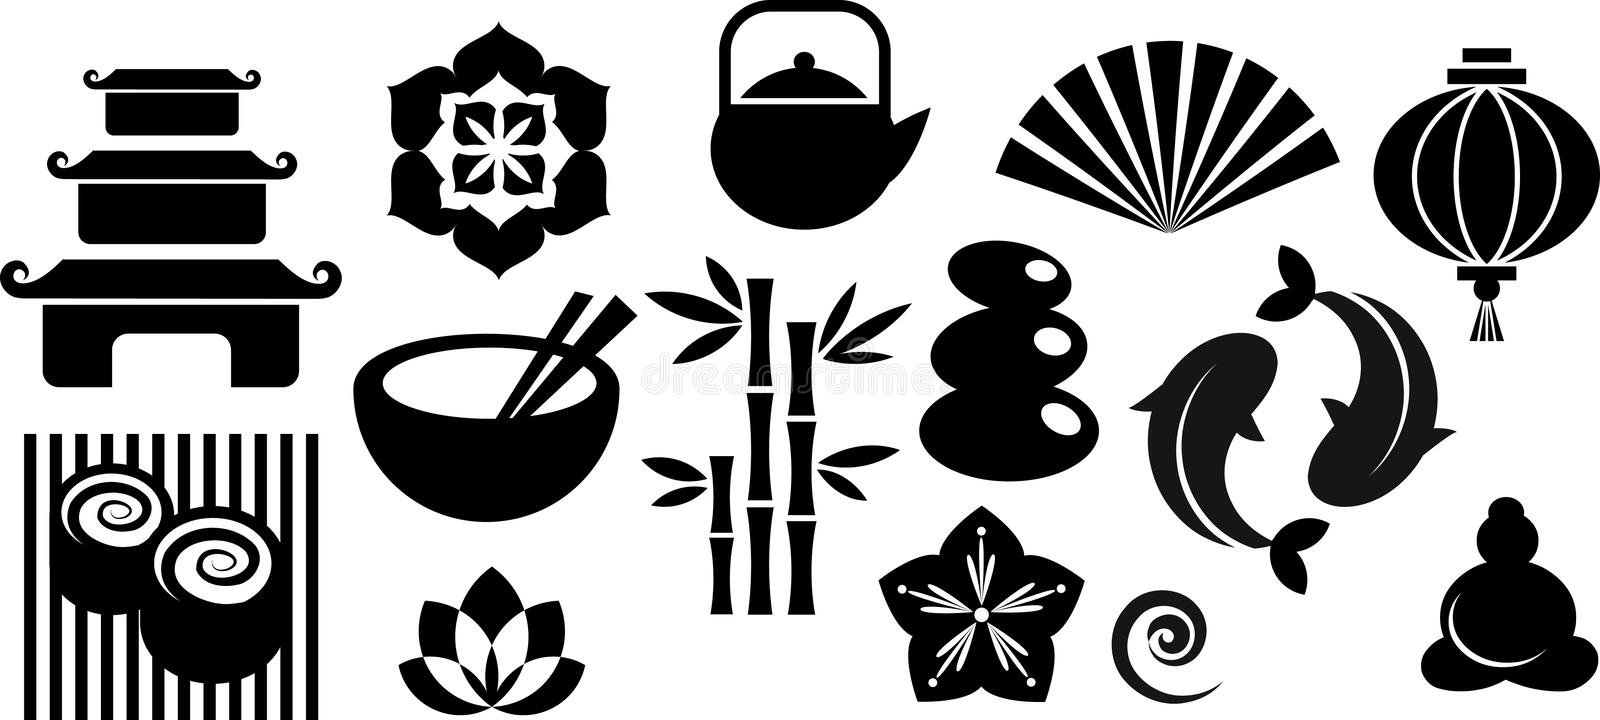 Download Collection Of Oriental And Zen Icons And Logos Stock Vector - Image: 12790361